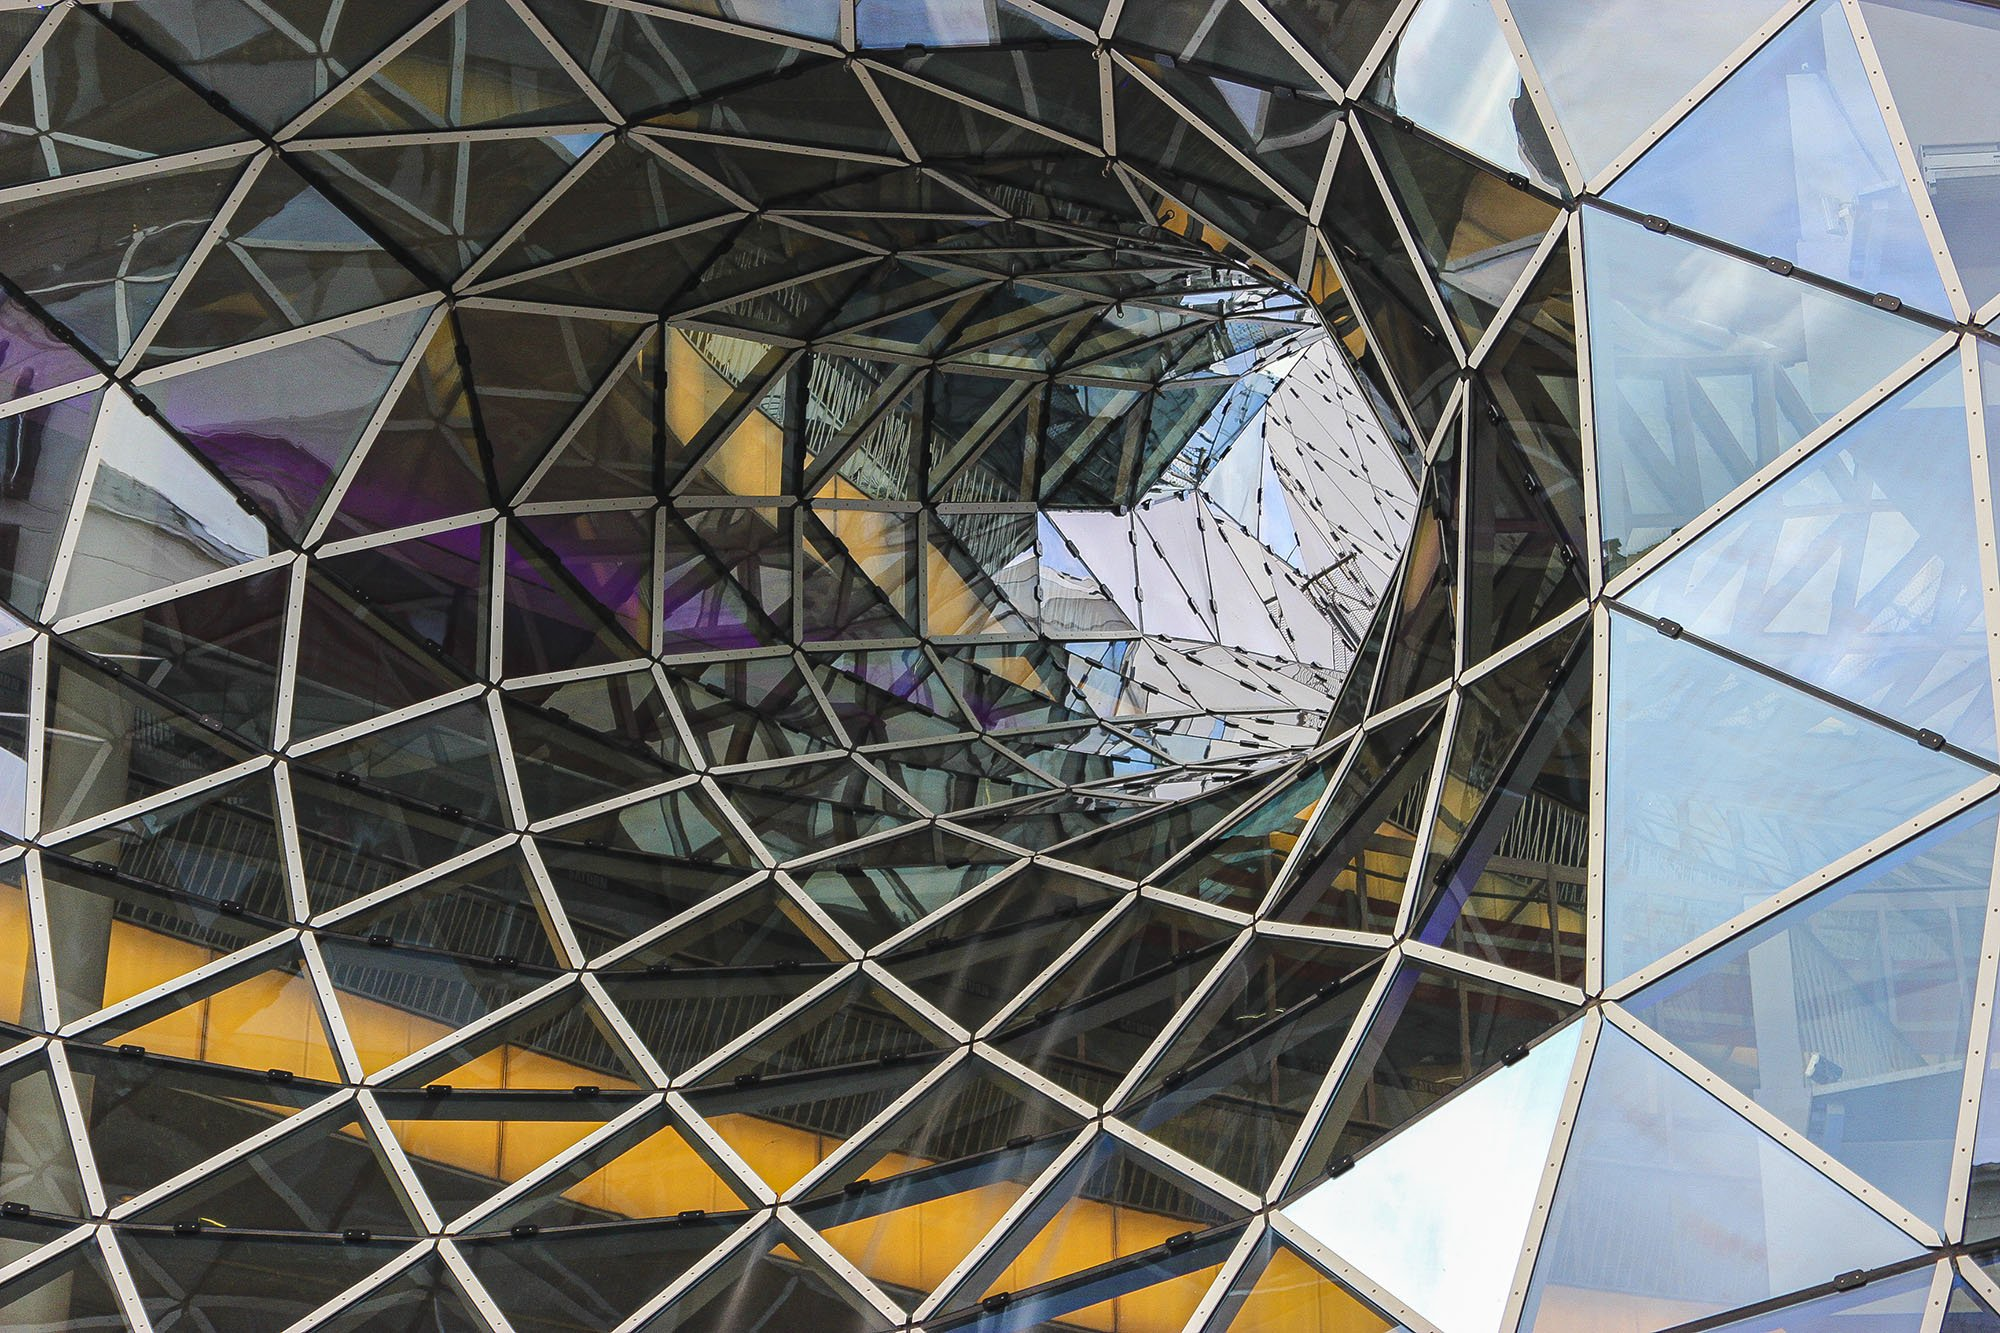 Vortex - My Zeil Shopping Center, Frankfurt, Germany